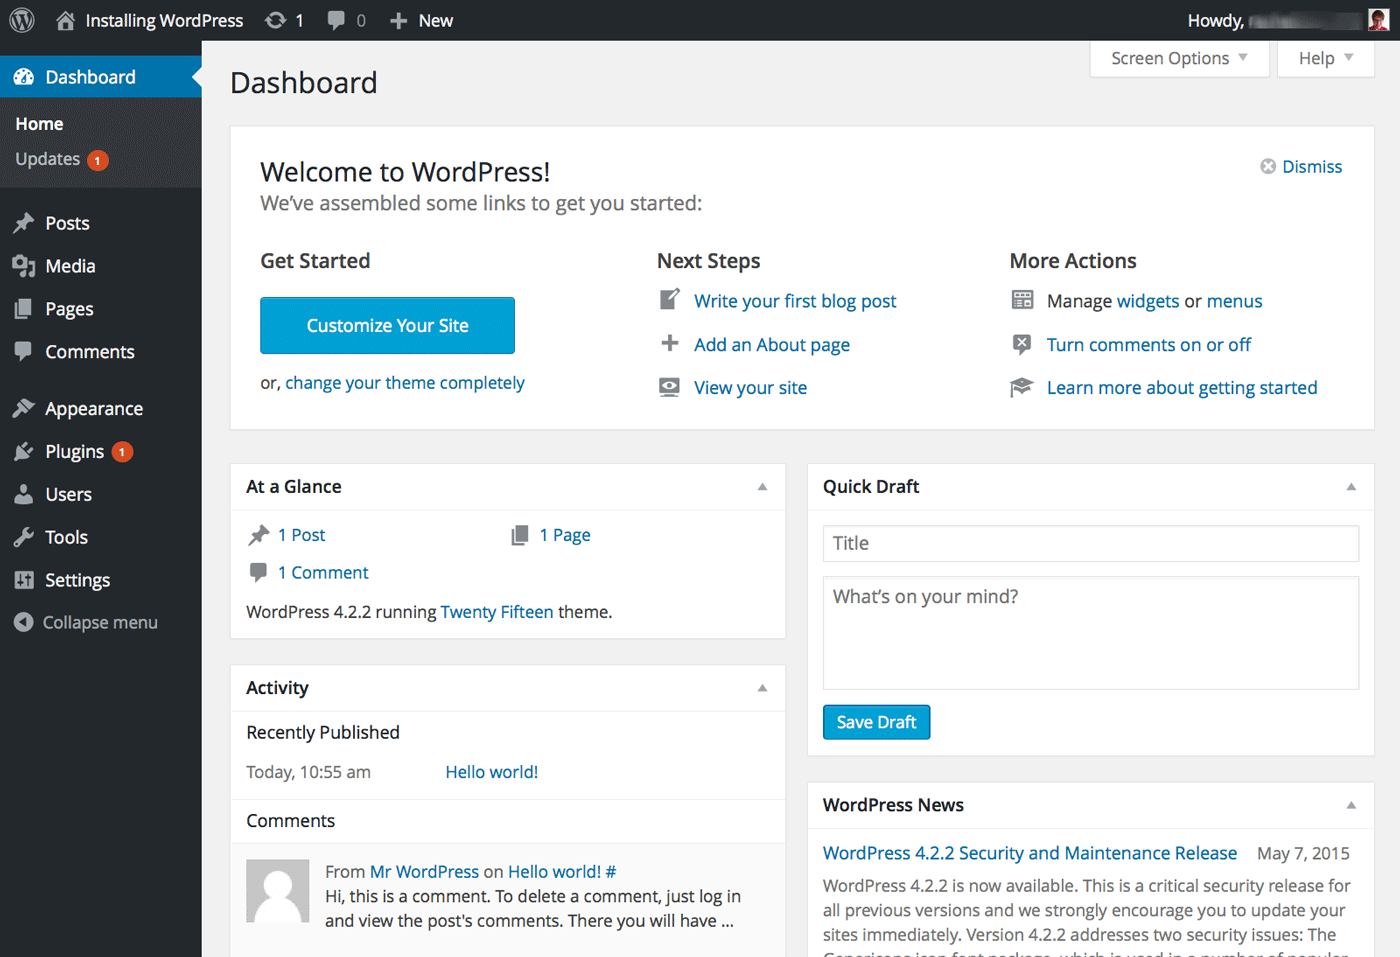 The WordPress man dashboard